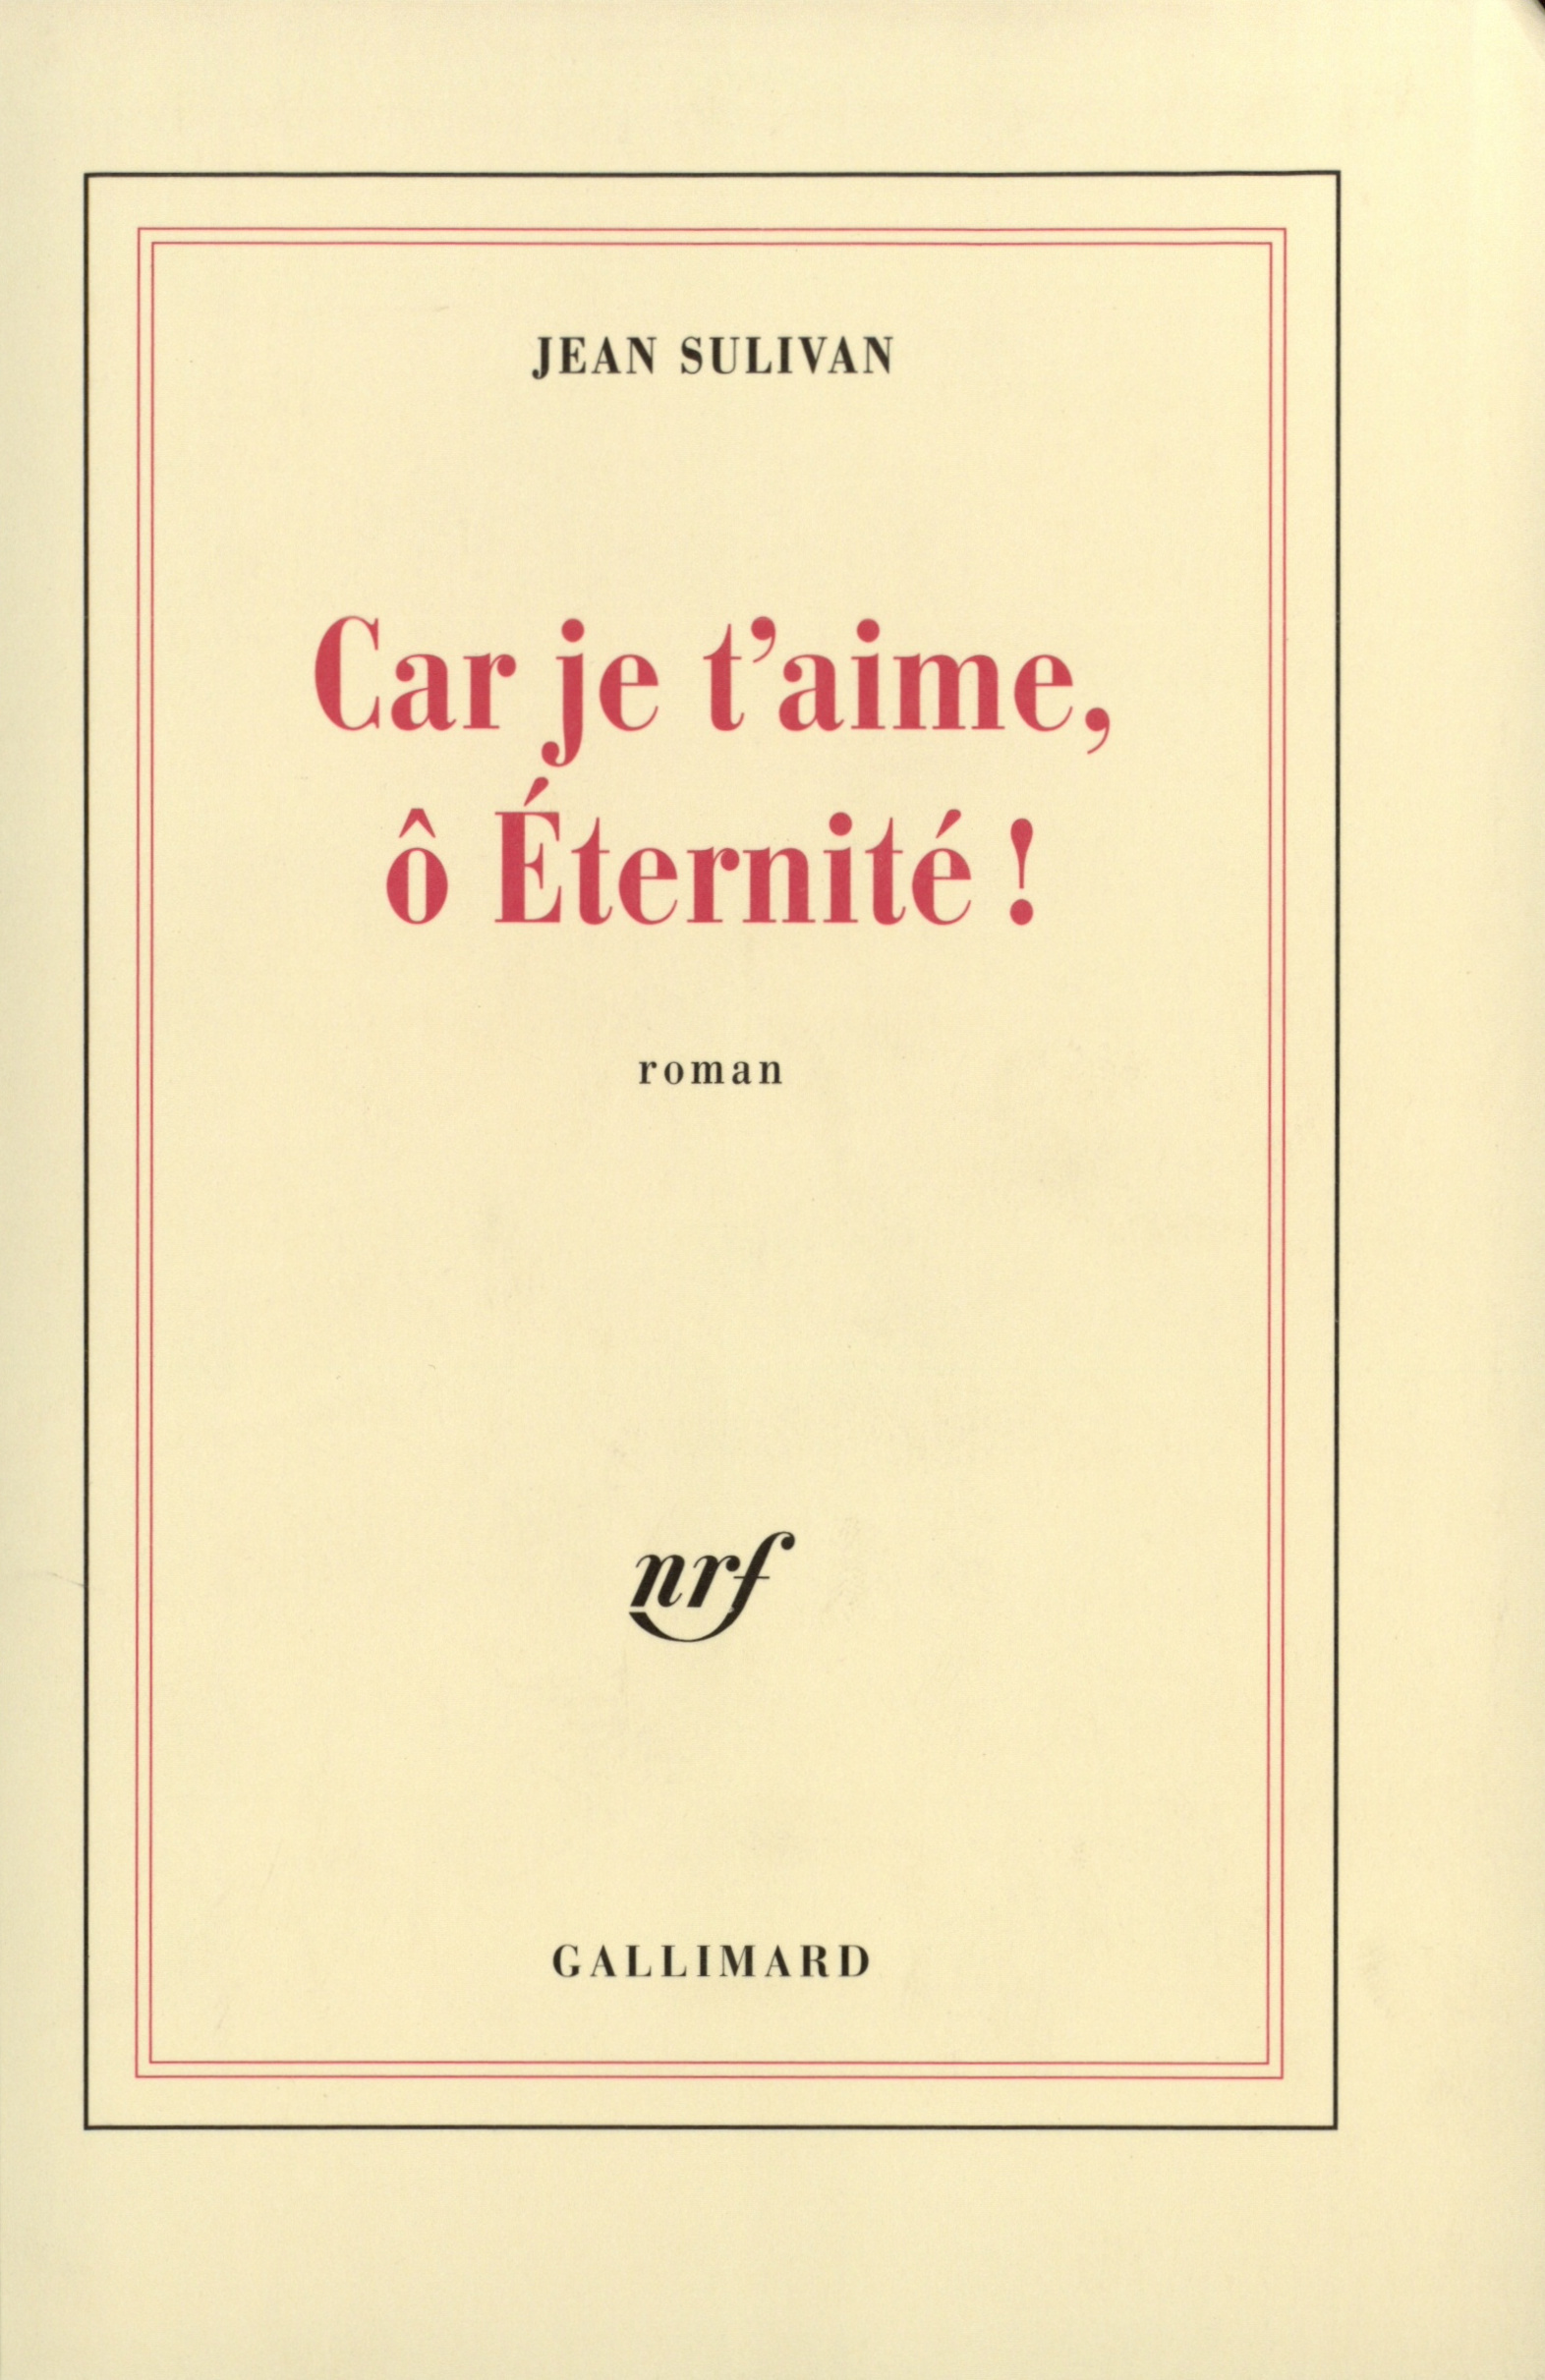 CAR JE T'AIME, O ETERNITE !